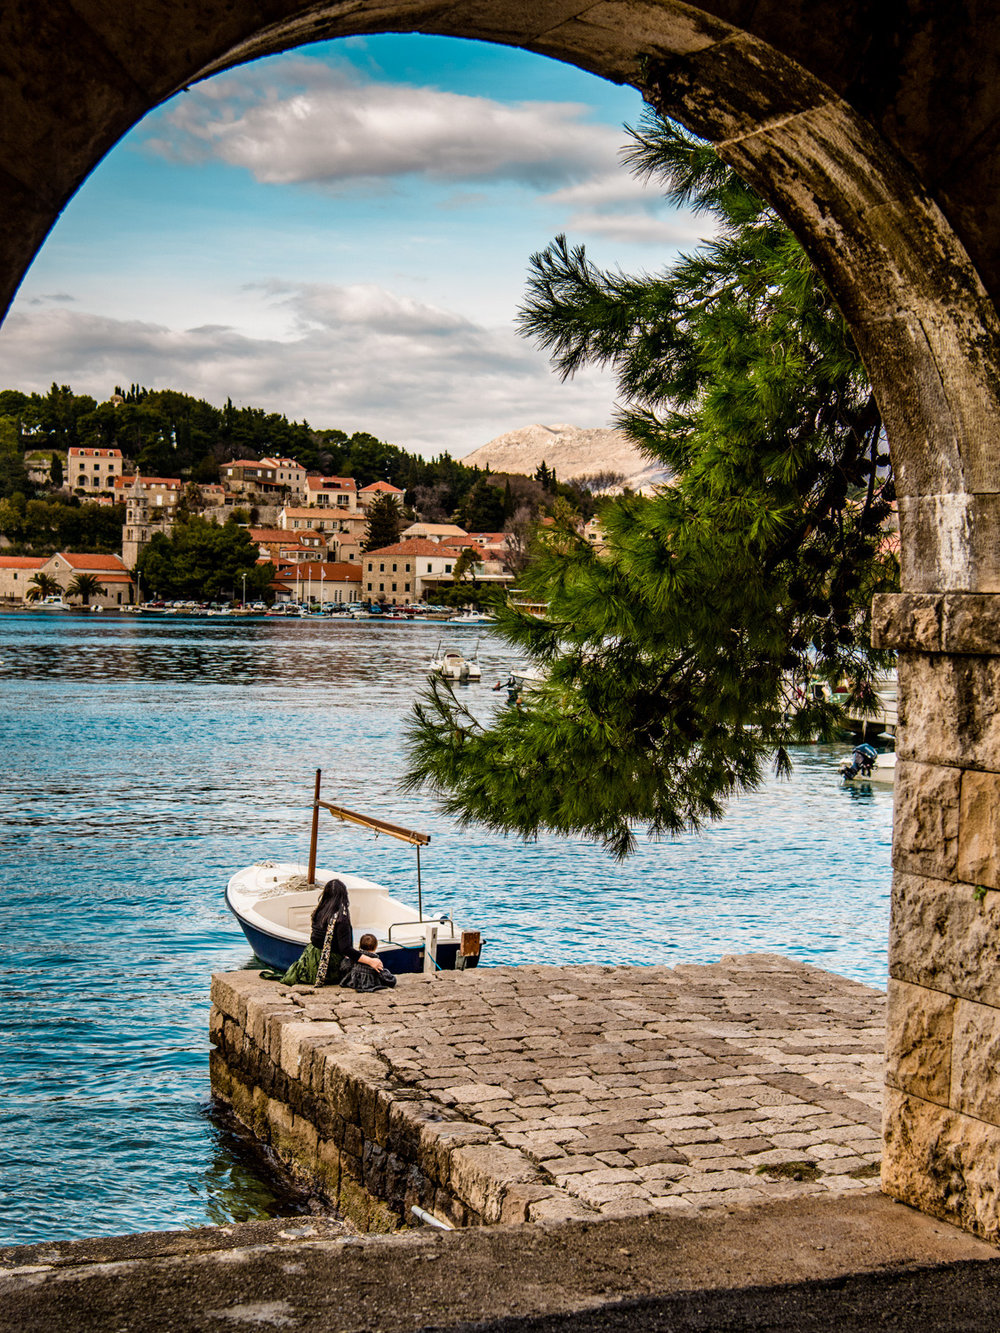 One of many breathtaking views in Cavtat, Croatia - our favorite day trip from Dubrovnik.